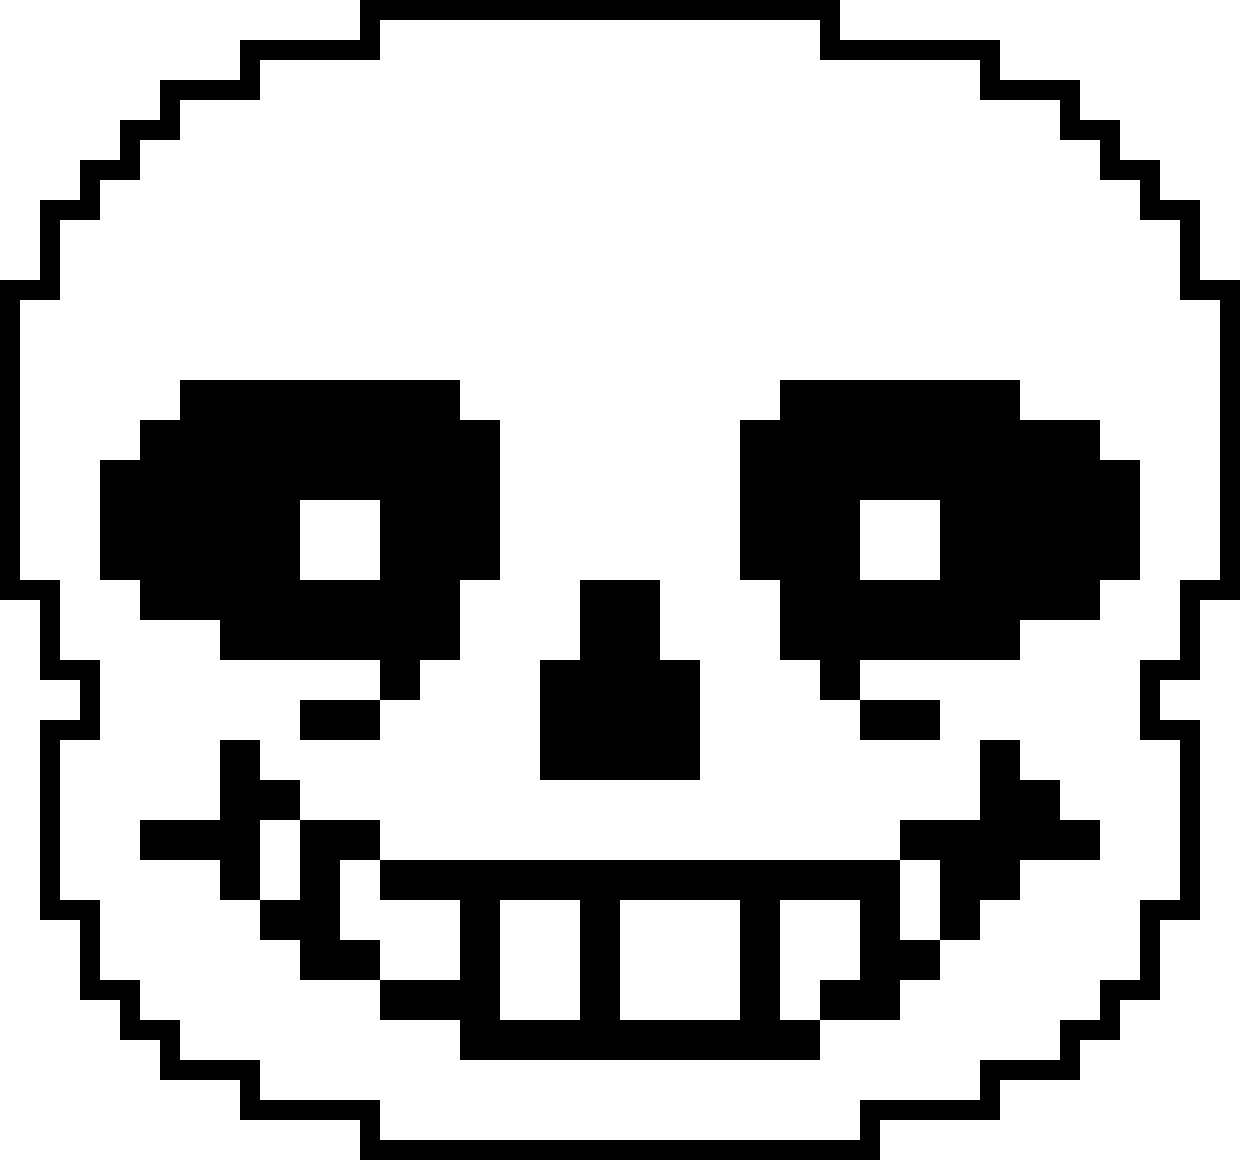 Sans face undertale png. Image s high resolution